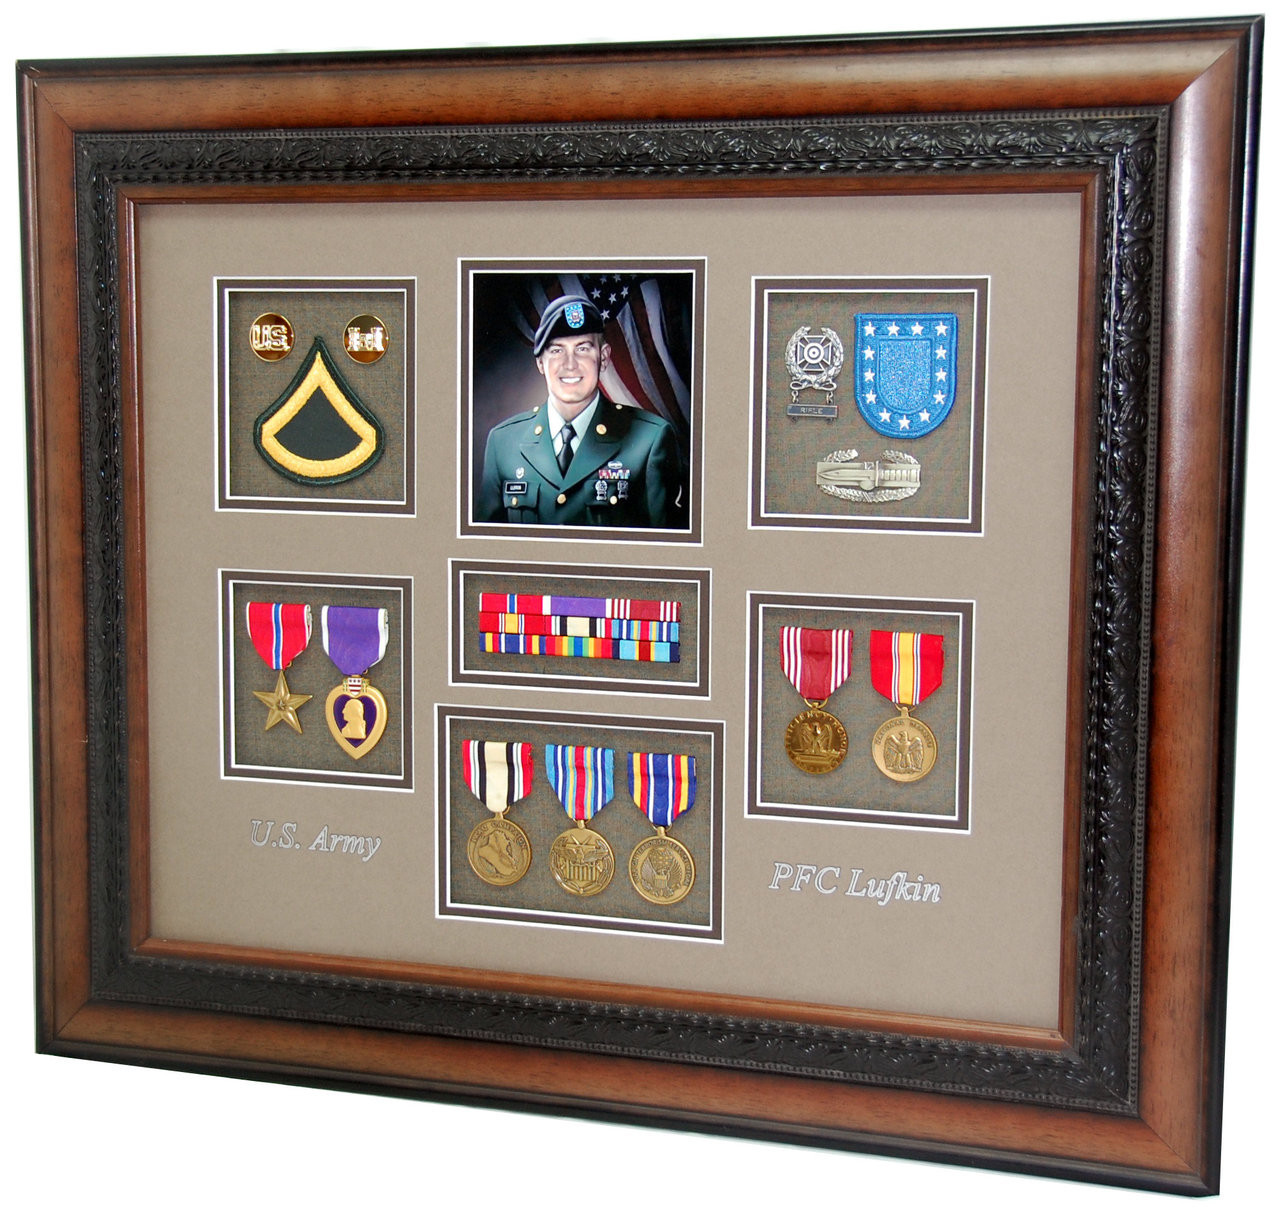 US Army Engineer Shadow Box - Military Memories and More